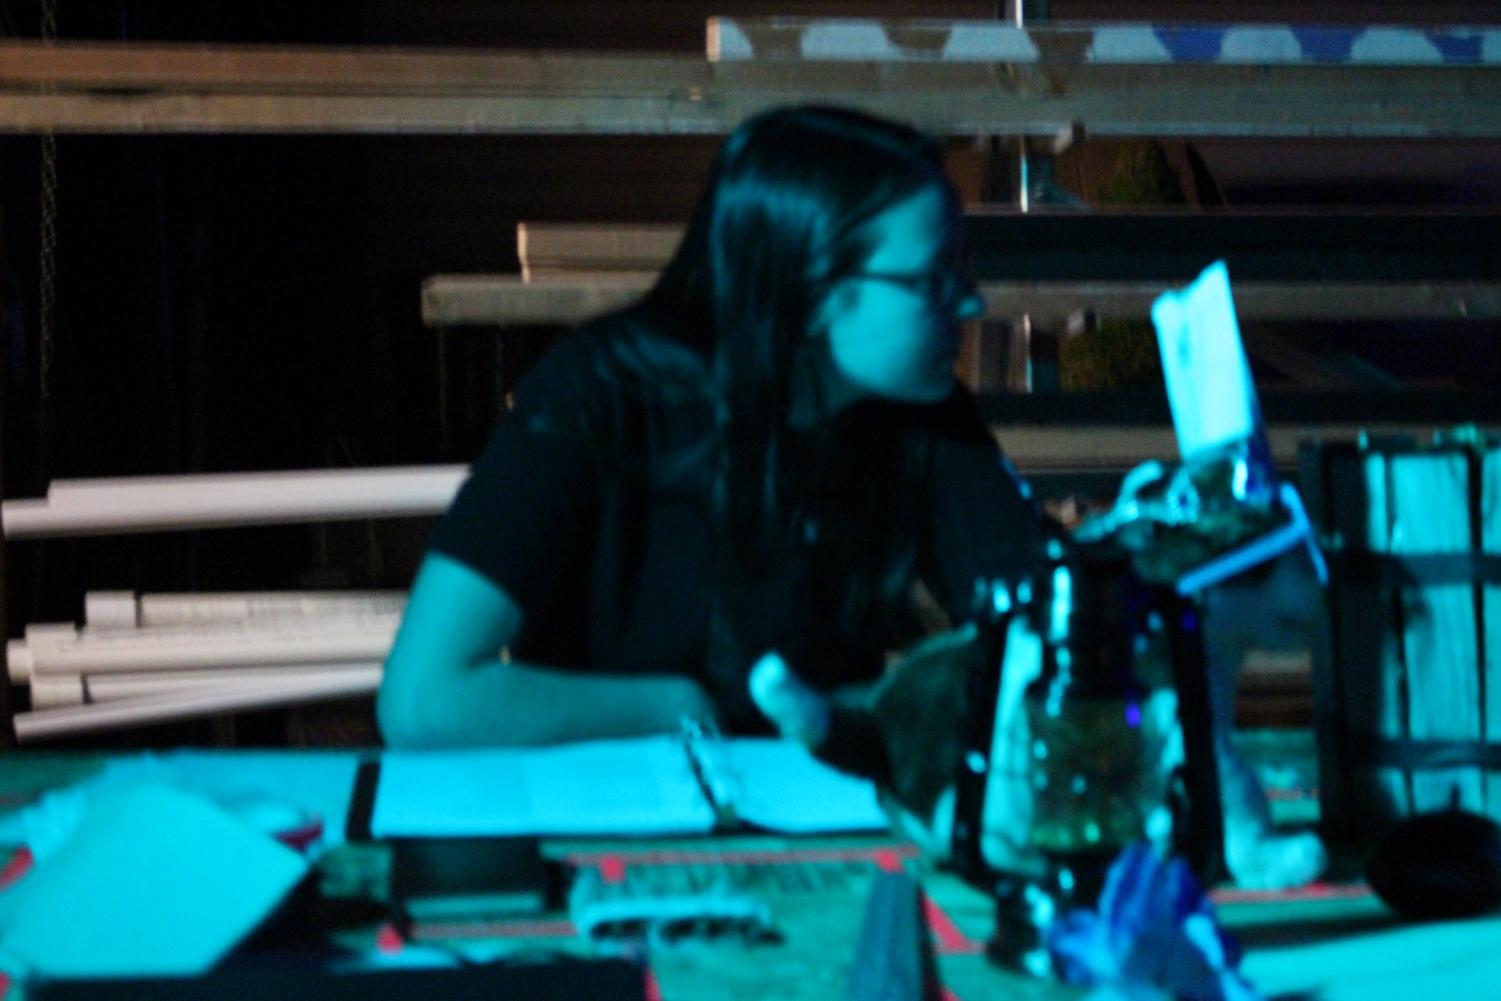 Sophomore+crew+member+Delani+King+watches+over+the+props+backstage.+Pflieger%2C+along+with+the+rest+of+the+cast%2C+appreciate+the+hard+work+crew+put+into+the+show.+%22+I%E2%80%99m+looking+forward+to+showing+everyone+all+the+hard%2C+hard+work+that+we+have+done%2C+because+I+just+want+people+to+be+able+to+appreciate+everything+that+goes+into+theatre.+And...+the+crew+for+being+able+to+put+sets+together+and+organize+lighting+and+sound+which+is+a+really+complicated+process%2C%22+said+Pflieger.+Photo+by+Anna+Feild